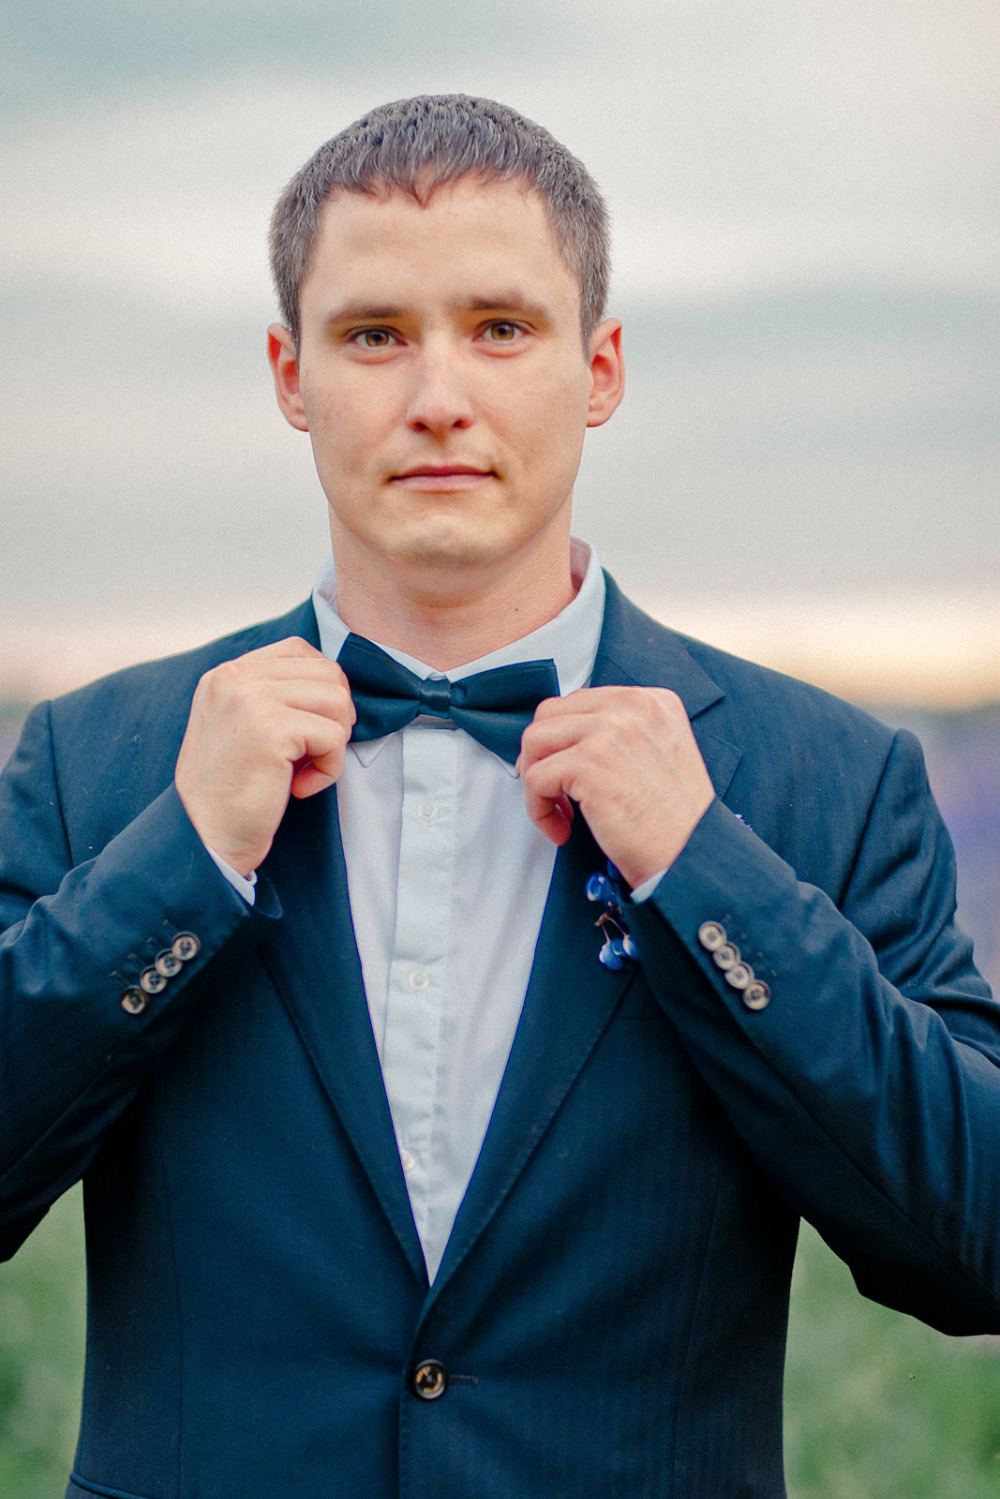 navy groomsman or groom bowtie attire